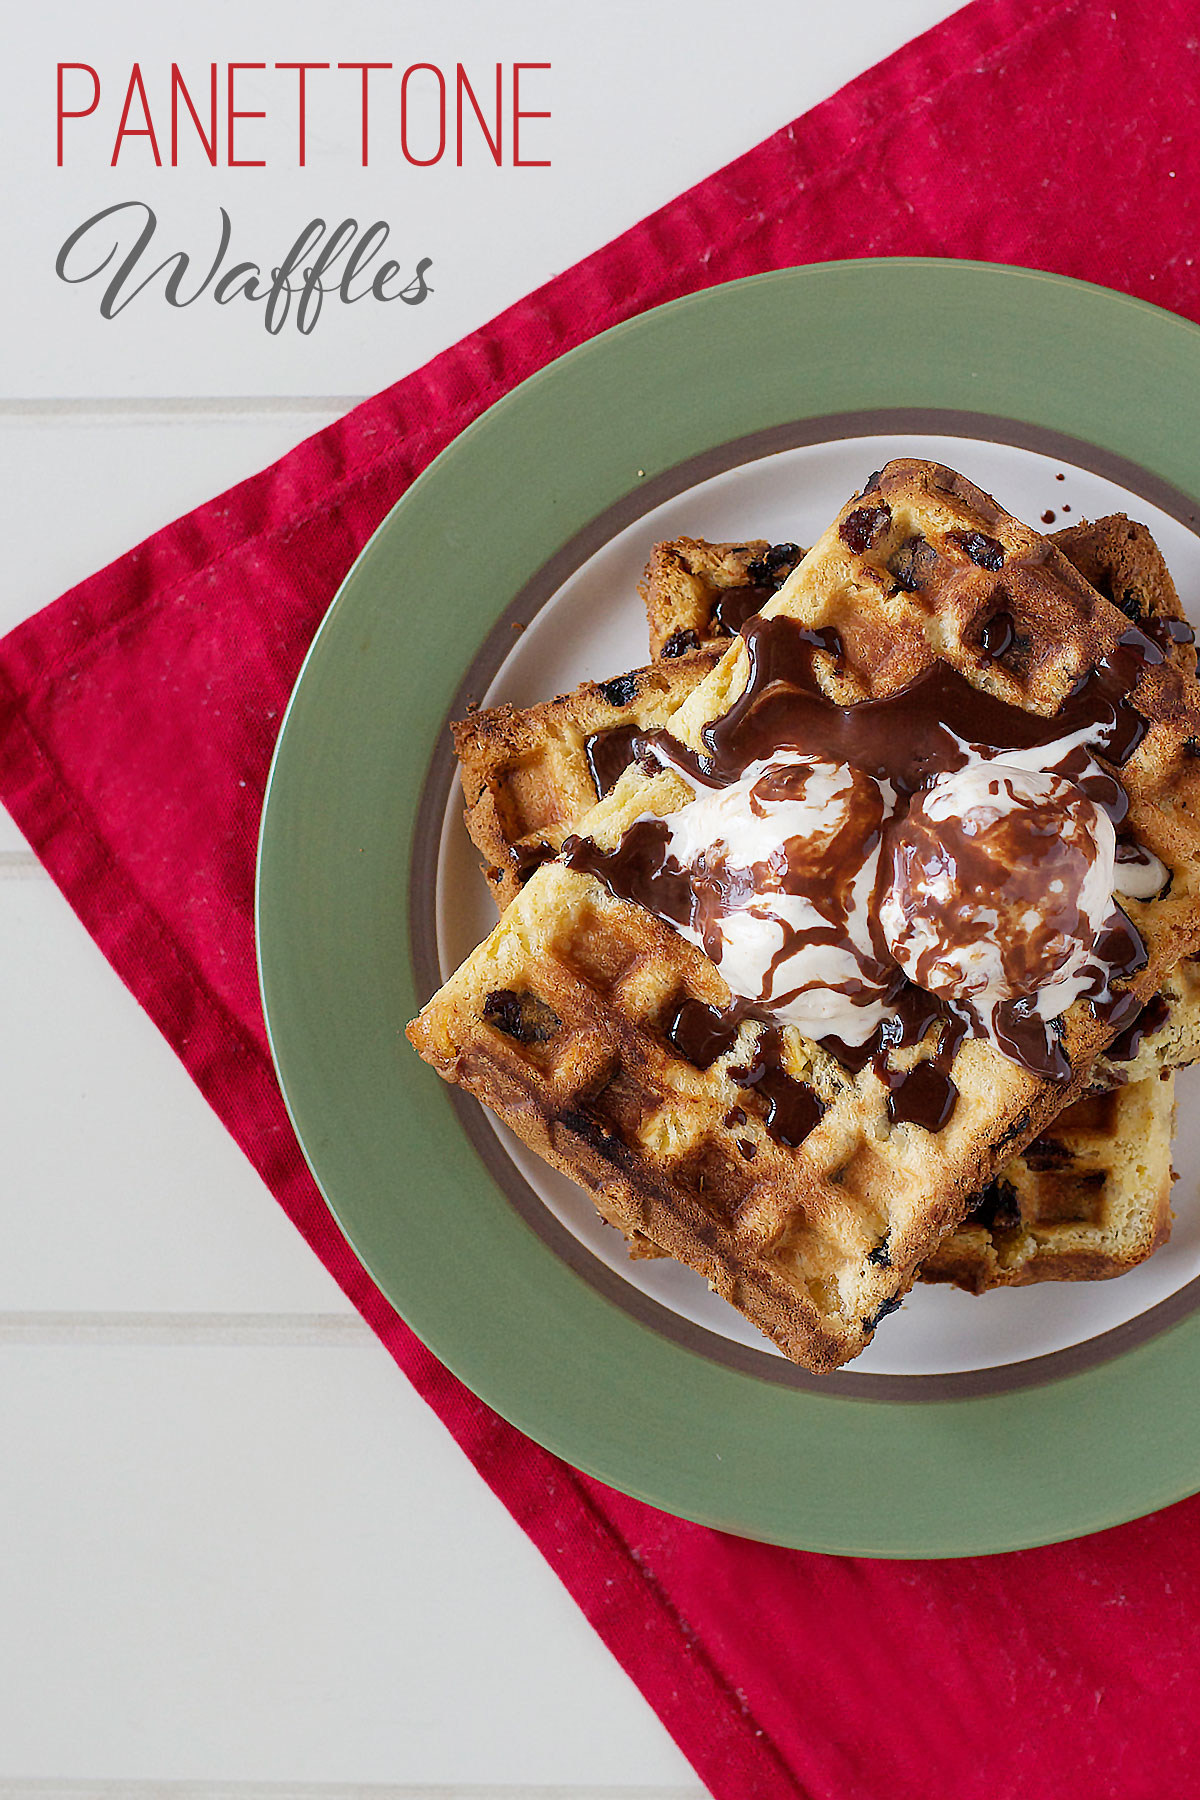 Panettone-wafffles